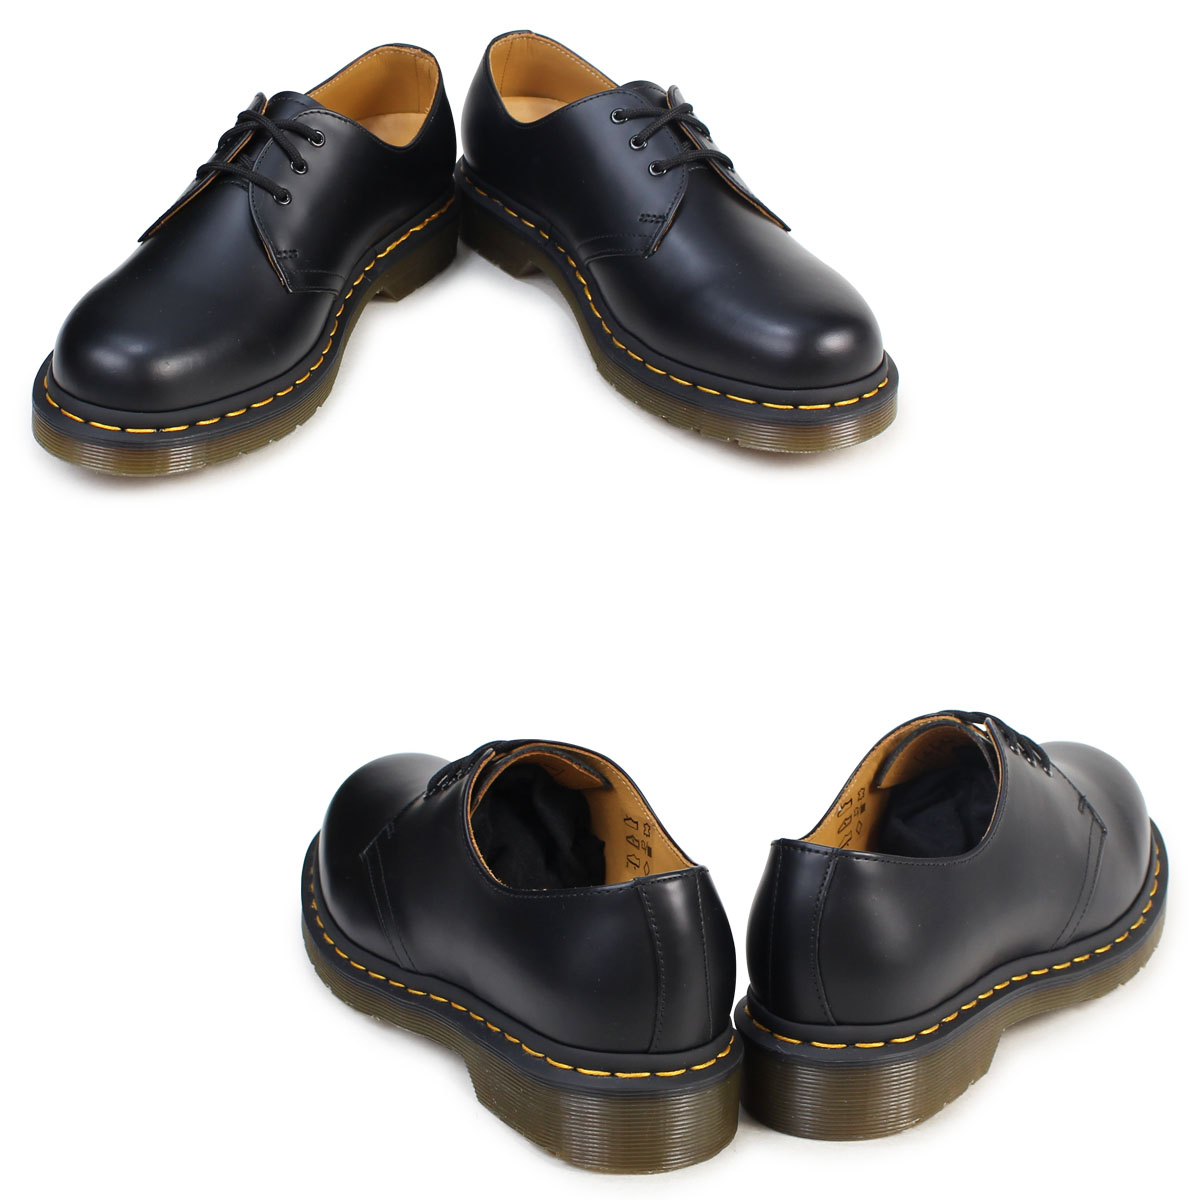 Dr. Martens 1461 3 Dr.Martens Hall shoes 11838002 11838600 MATERIAL UPDATES leather men women